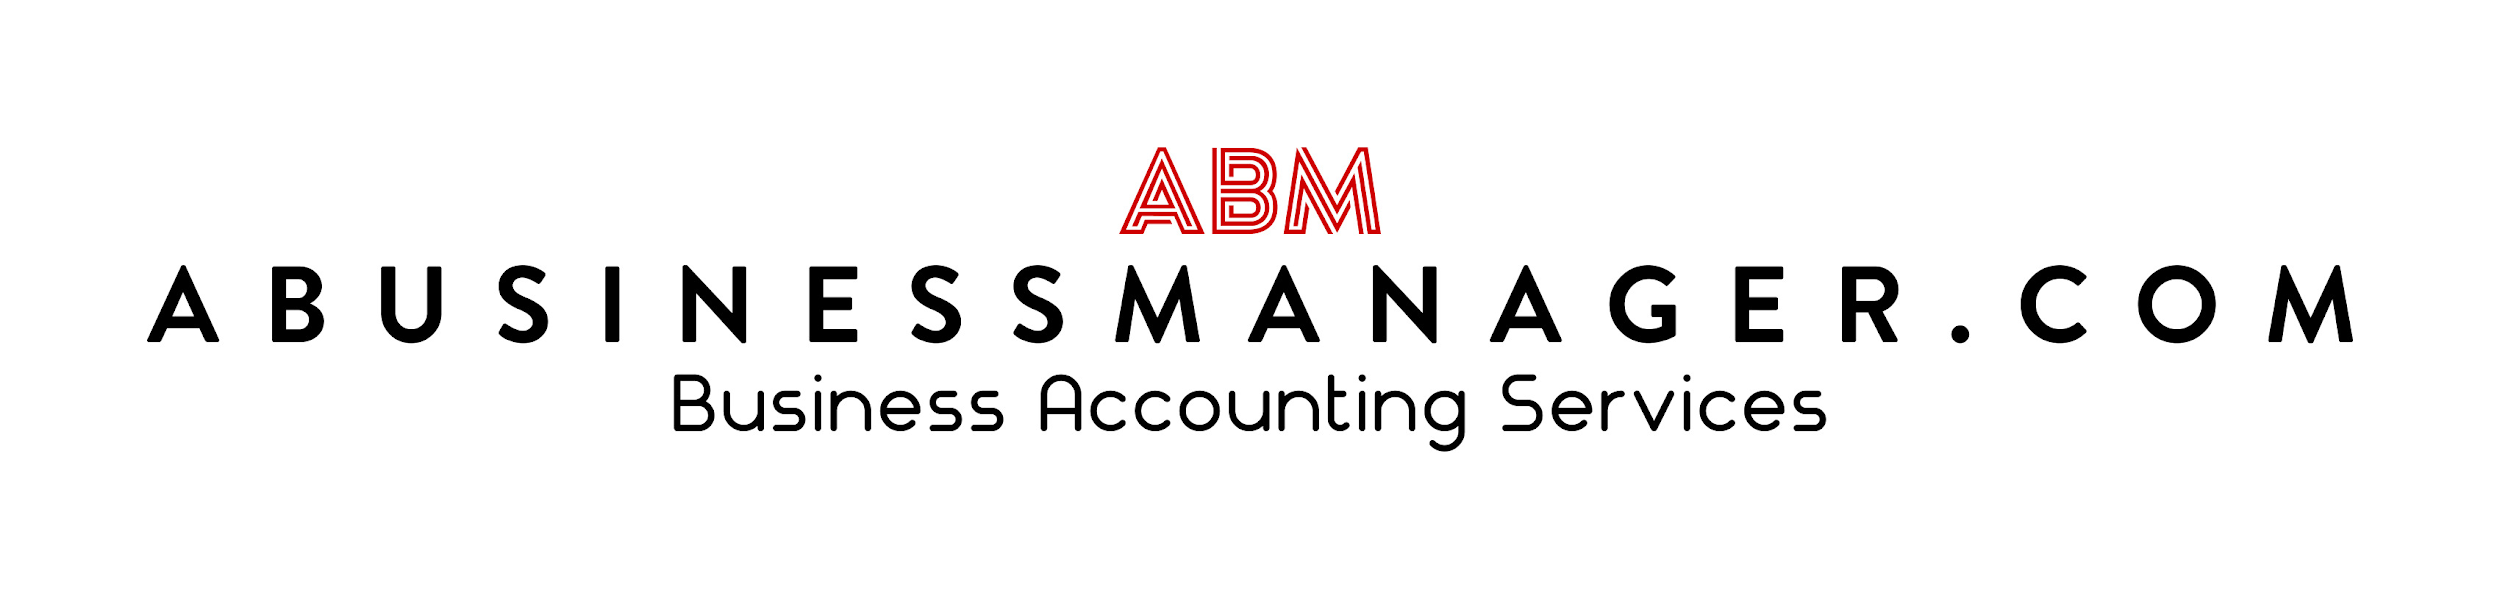 ABusinessManager.com - virtual cfo services